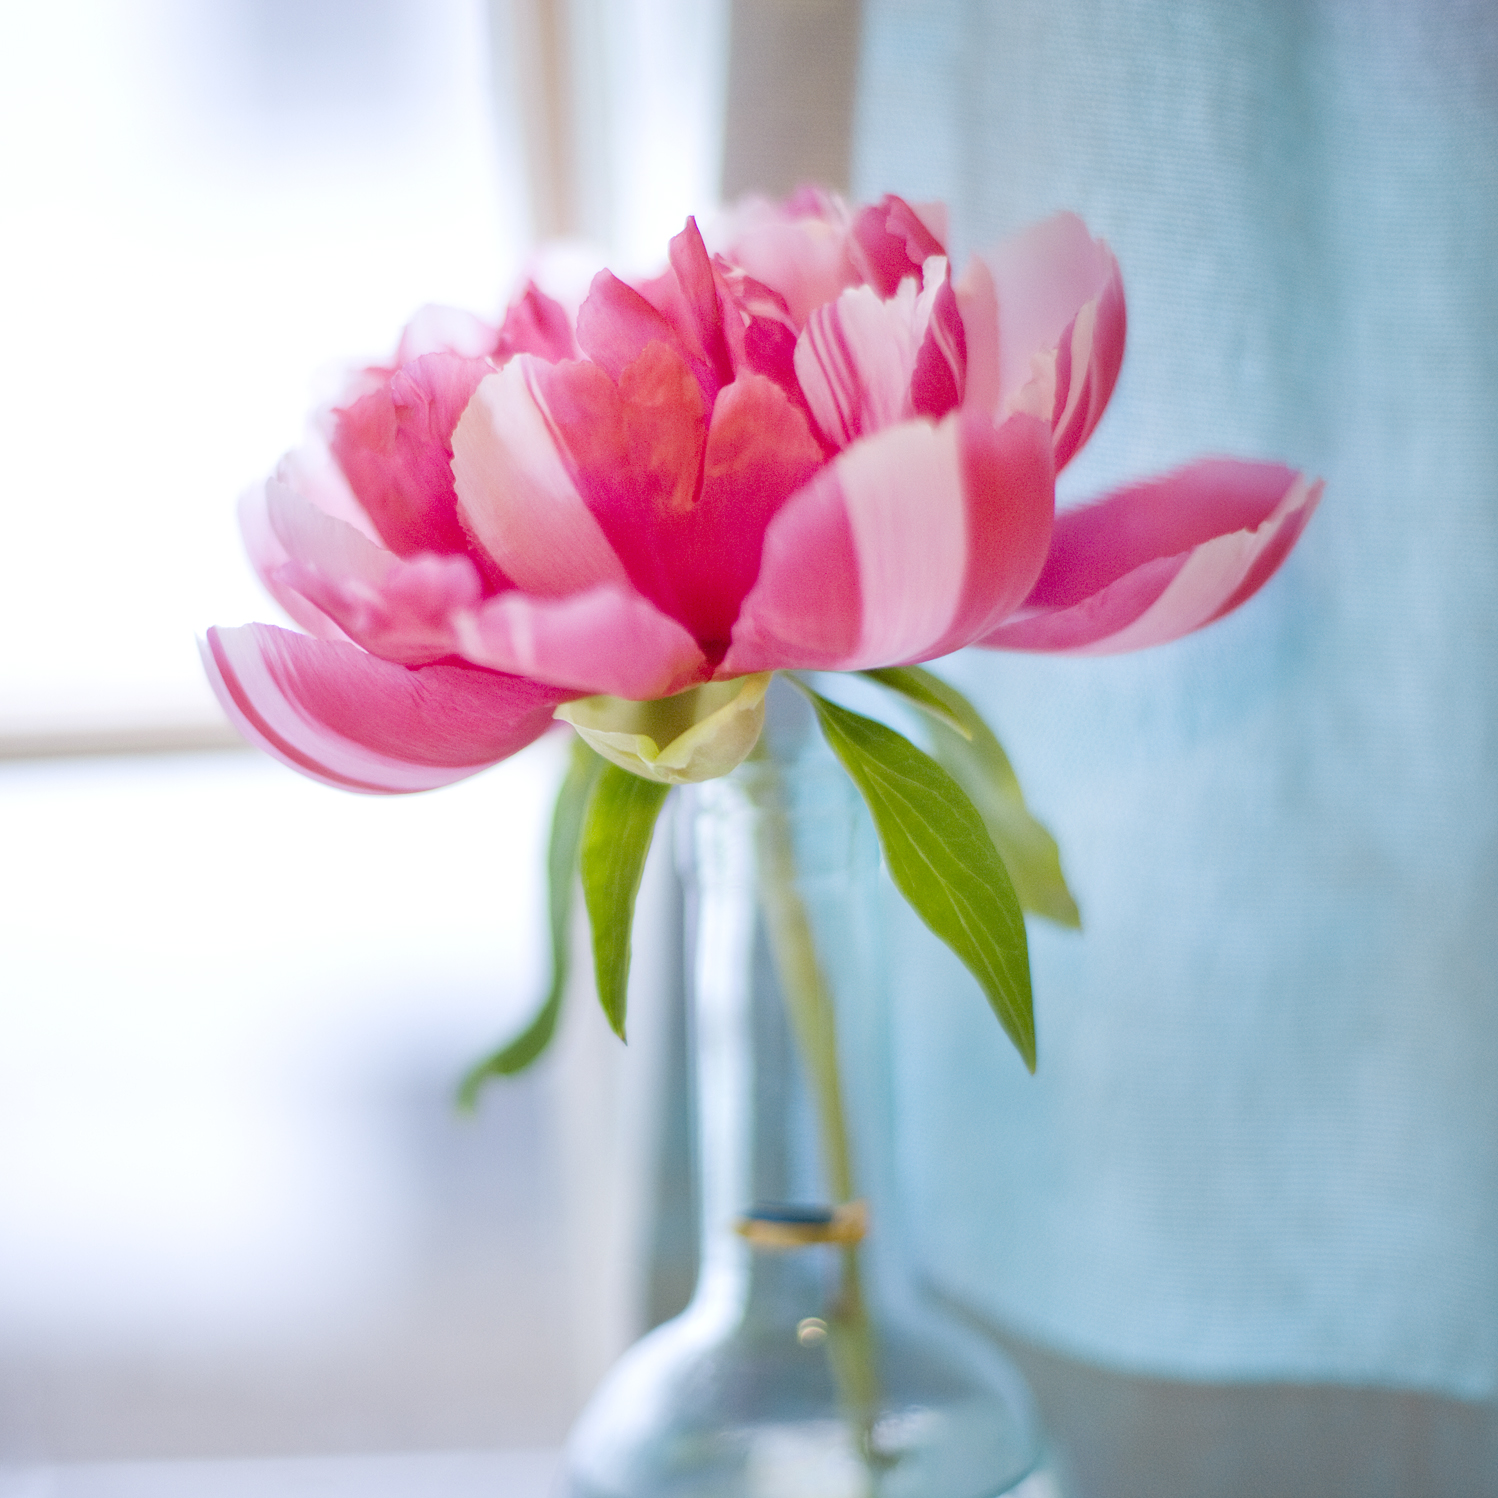 pink and white striped flower in windowsill